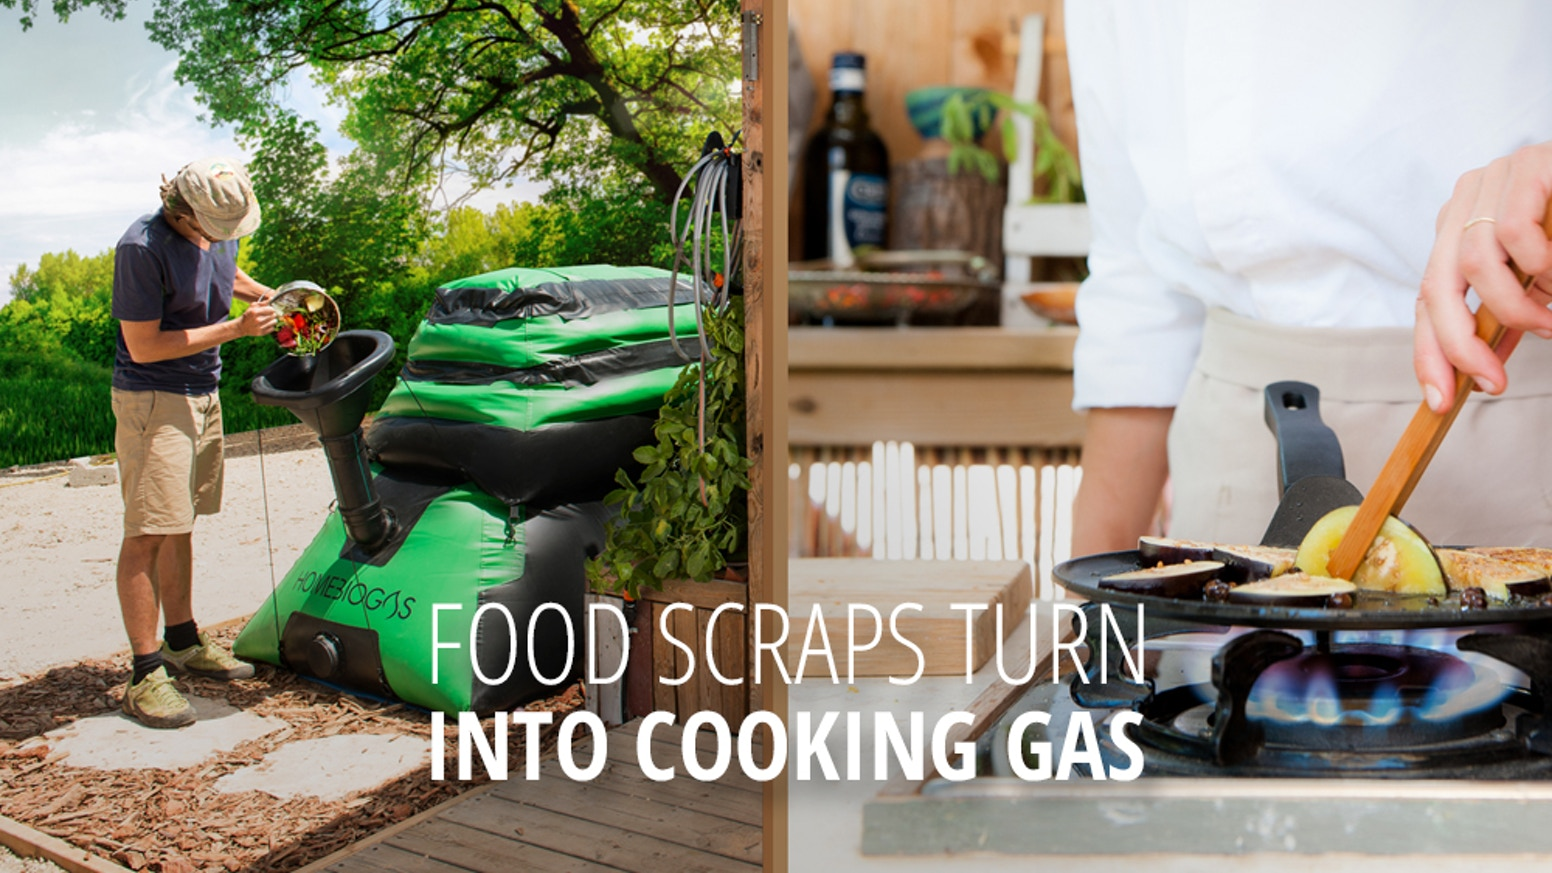 Recycle your food scraps in a completely safe and convenient way AND make renewable energy